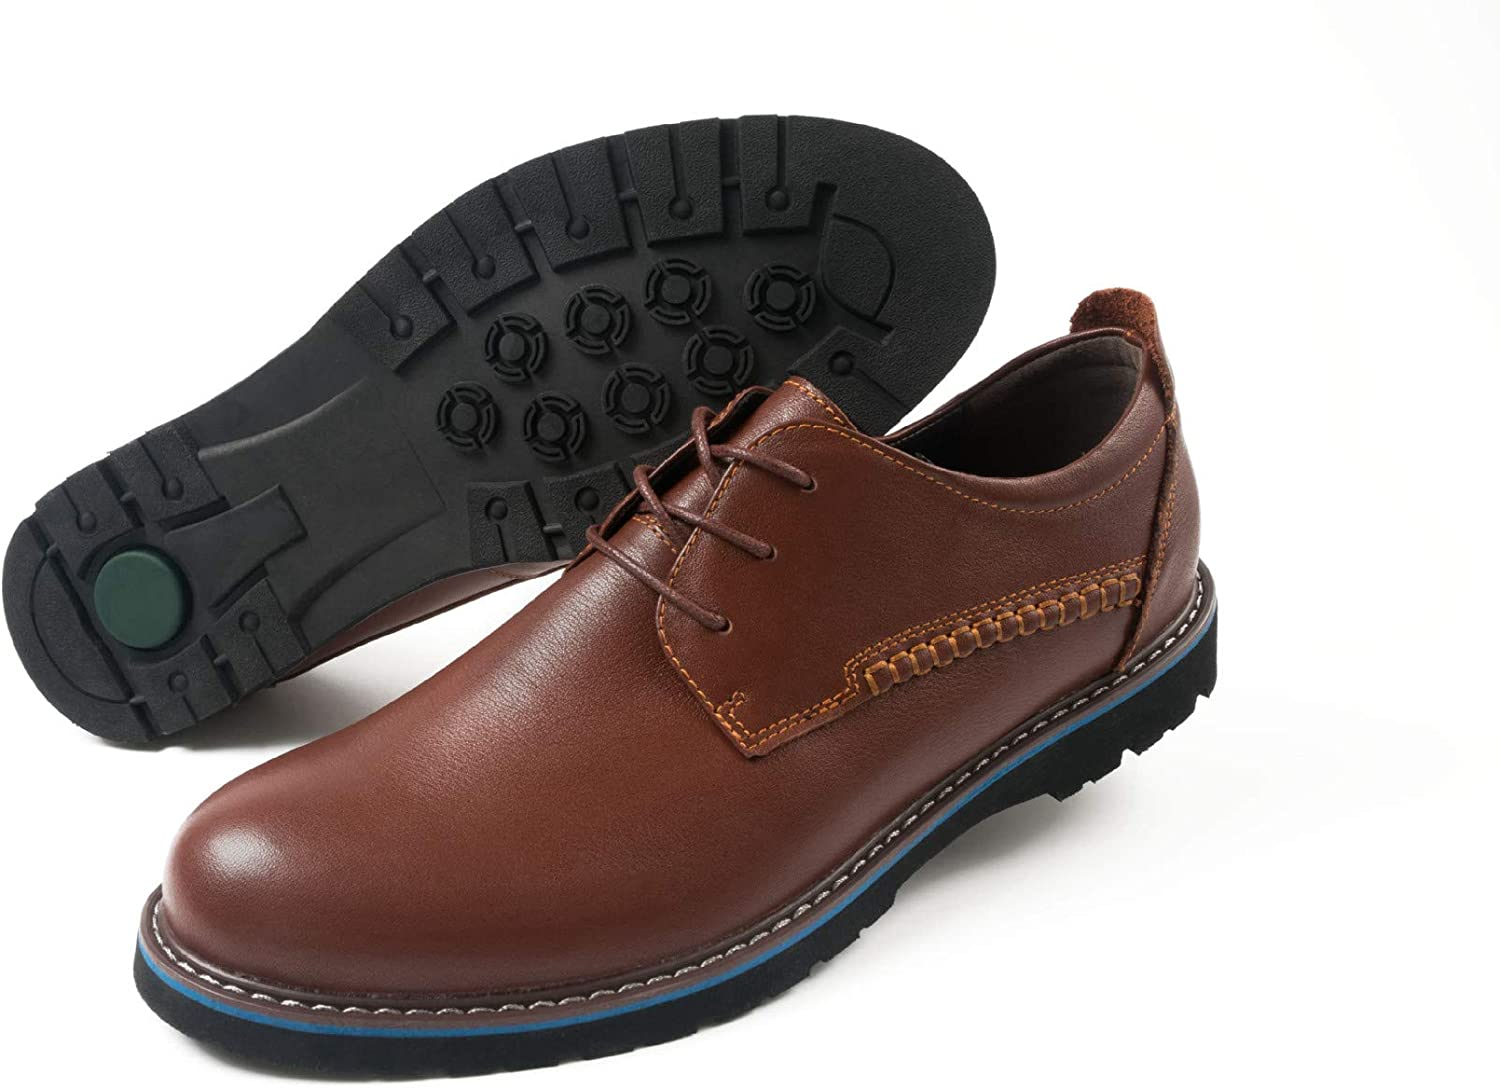 A'erma Men's Genuine Leather shoes